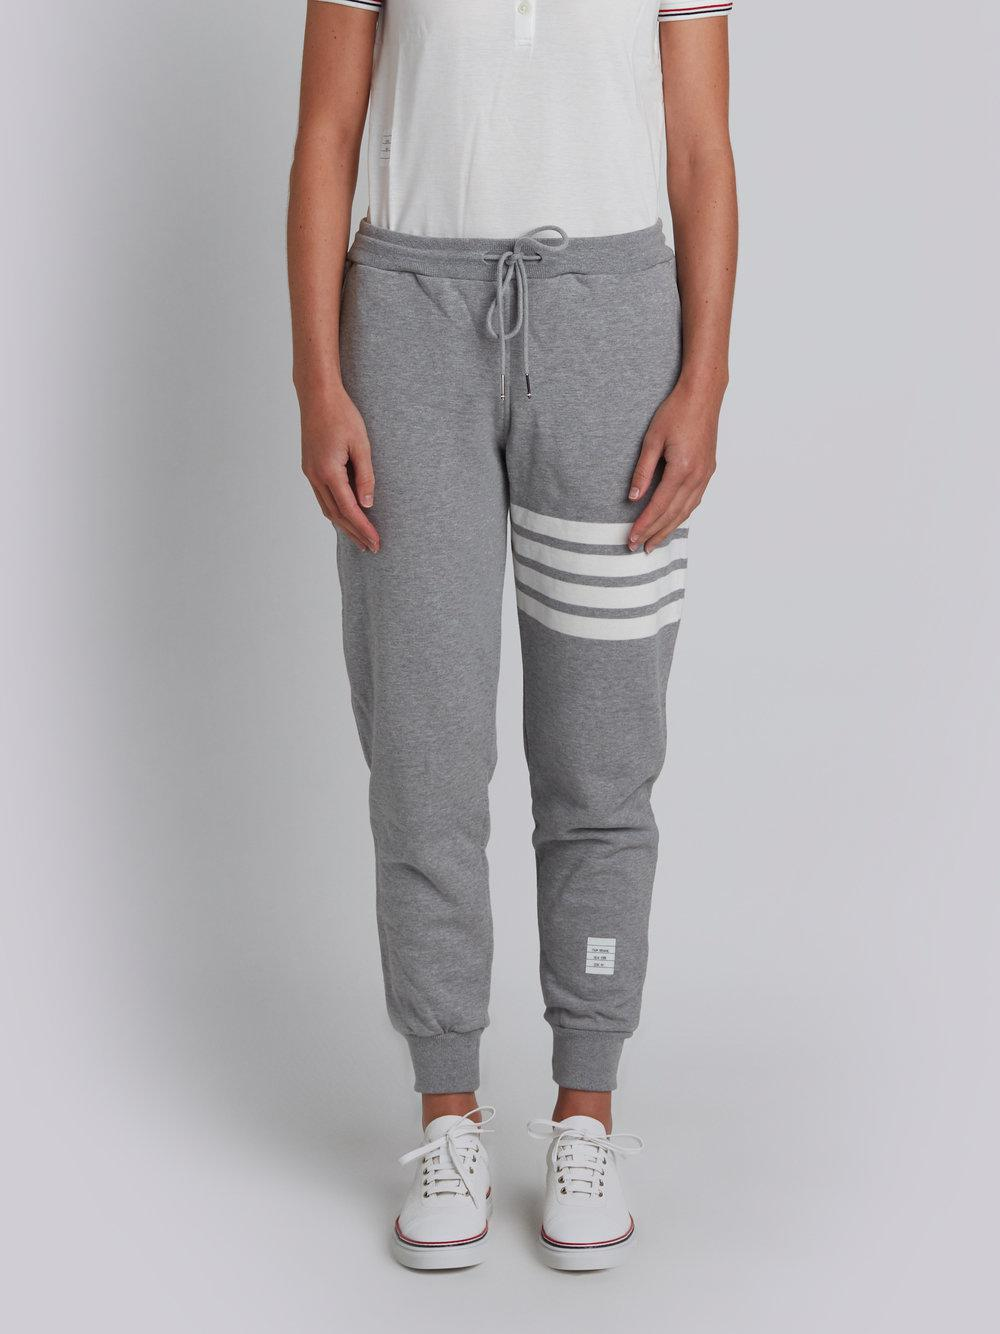 324af8875eb2 Thom Browne. Men s Gray Classic Sweatpants In Classic Loop Back With  Engineered 4-bar